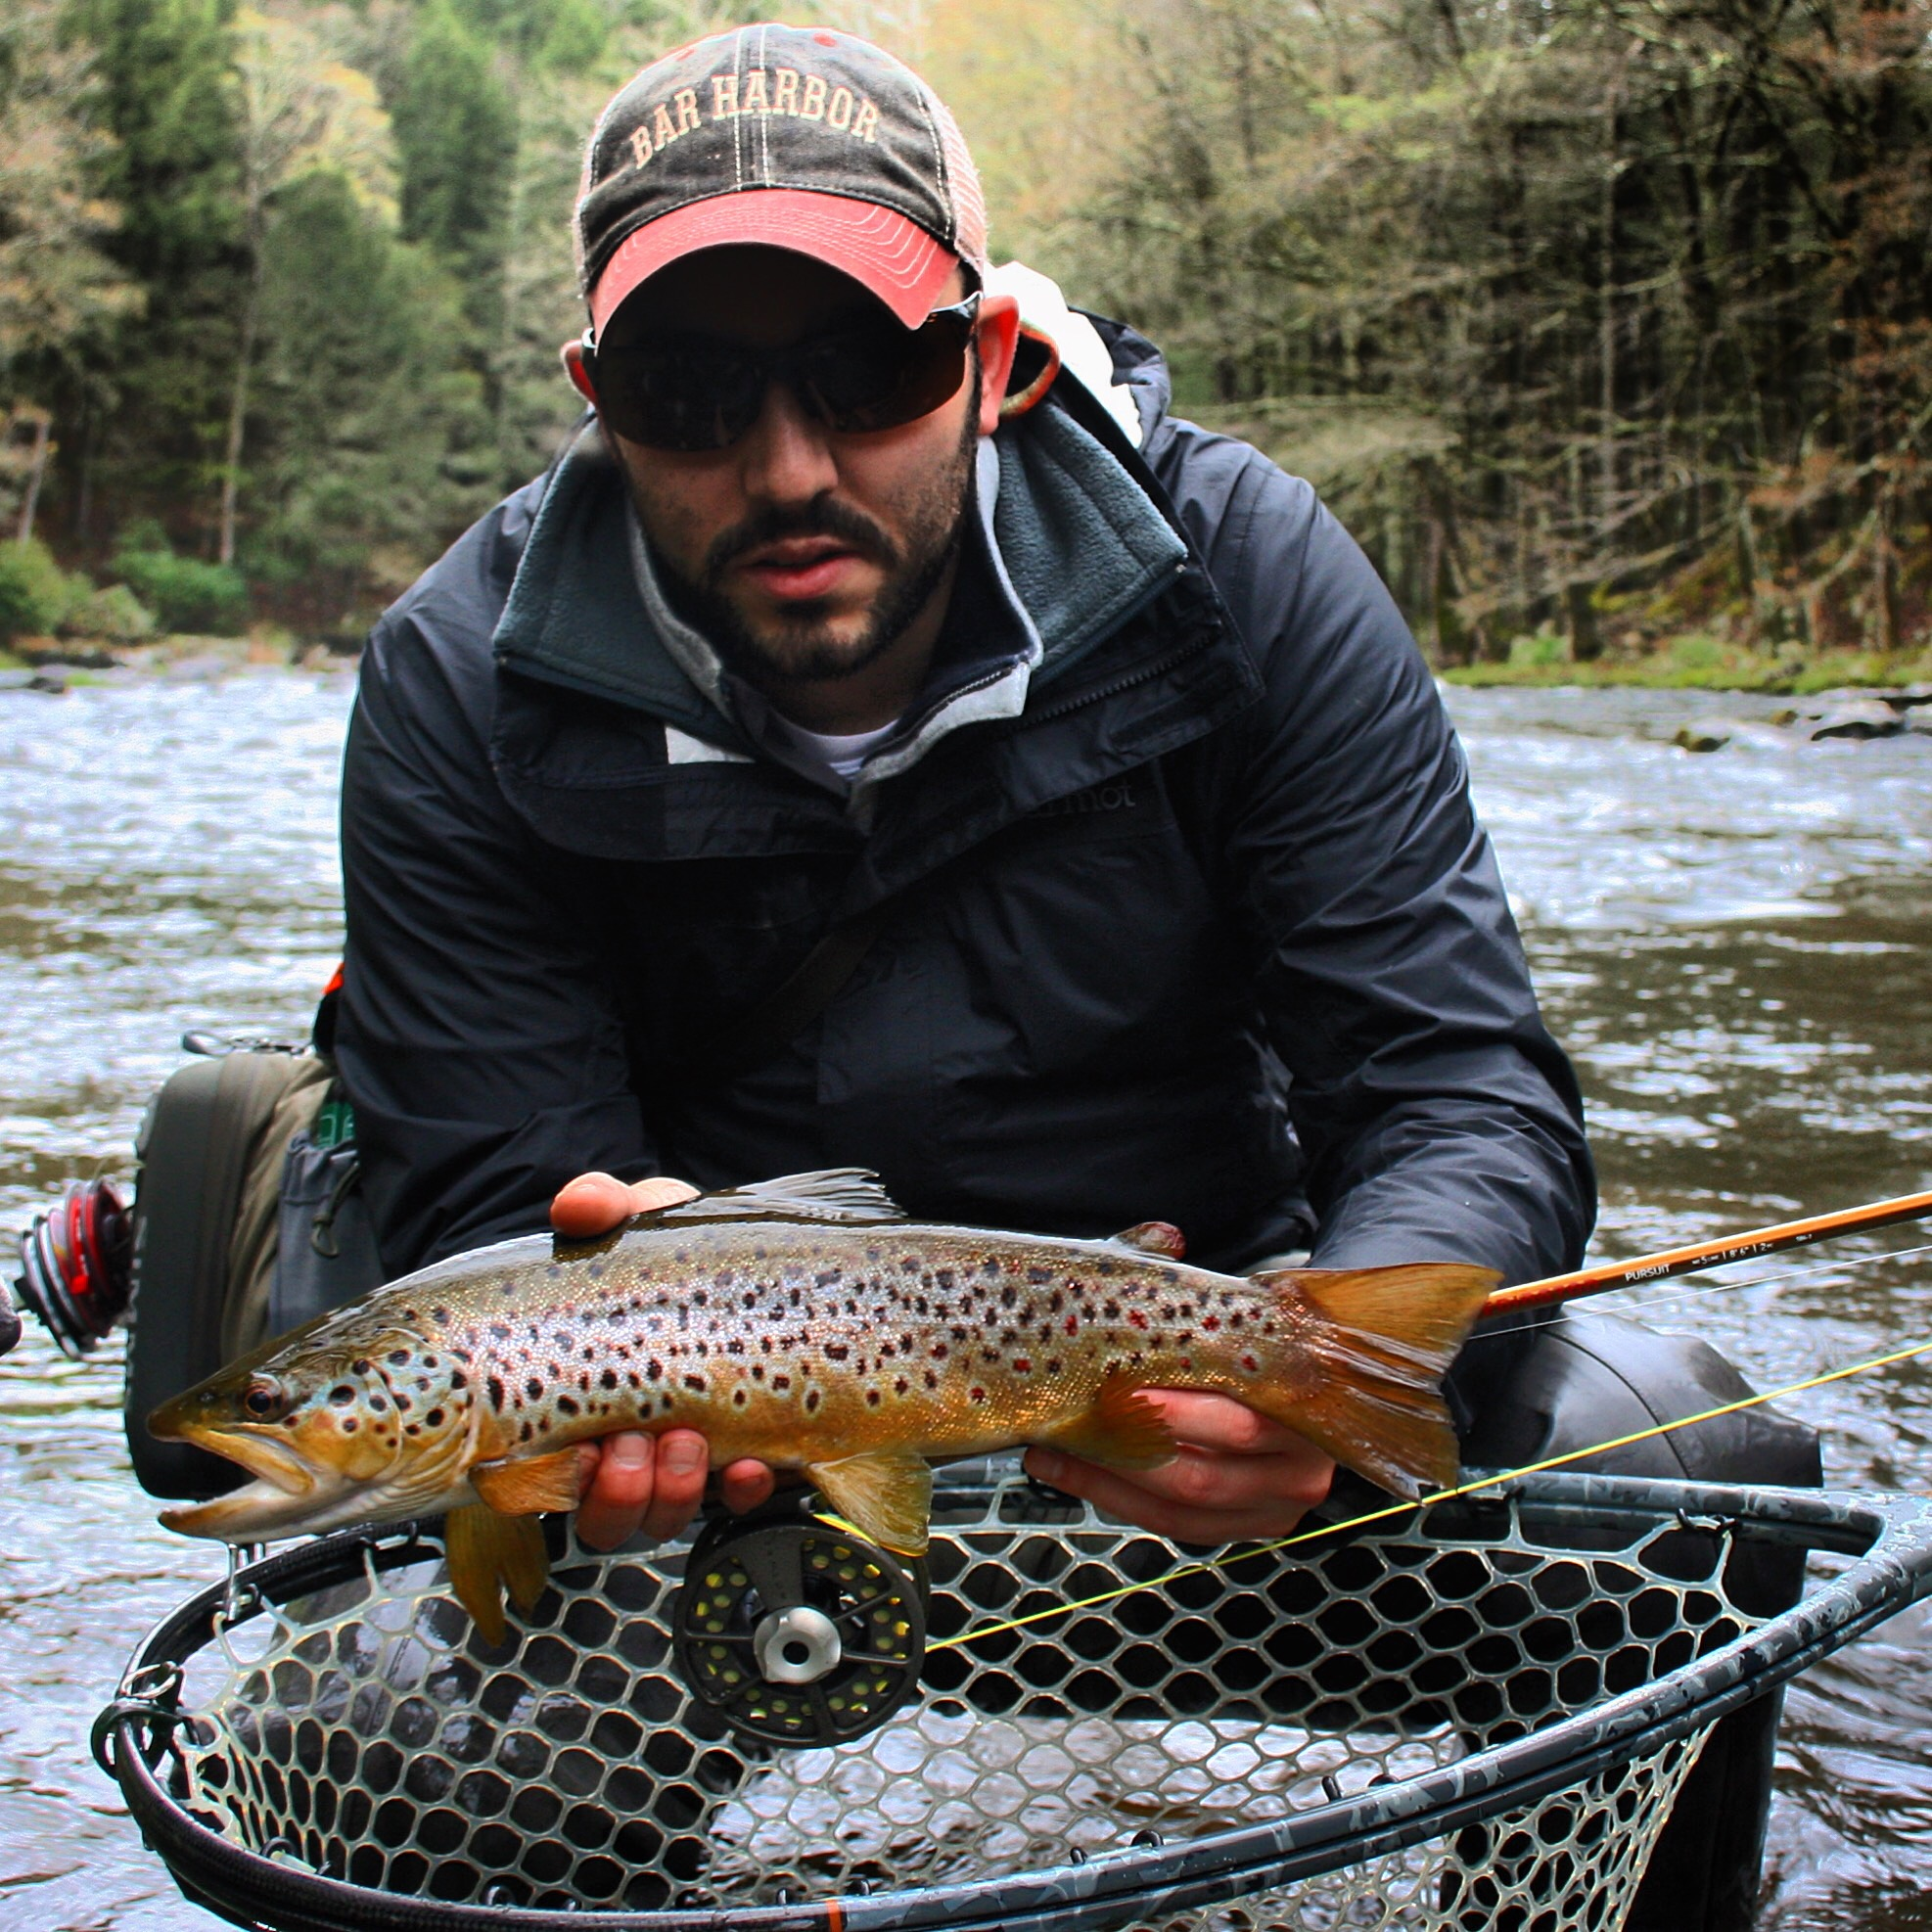 Michael Meola - Guide/Instructor  - Mike enjoys all kinds of fishing, but fly fishing for trout is at the top of his list. It doesn't matter if he's casting foam dry flies at rising trout in mountain valleys, fishing technical nymph rigs in high water, or swinging wet flies and streamers, Mike's passion for chasing wild trout in wild places never ends. Mike is also an avid hiker, hunter, and former lacrosse coach.